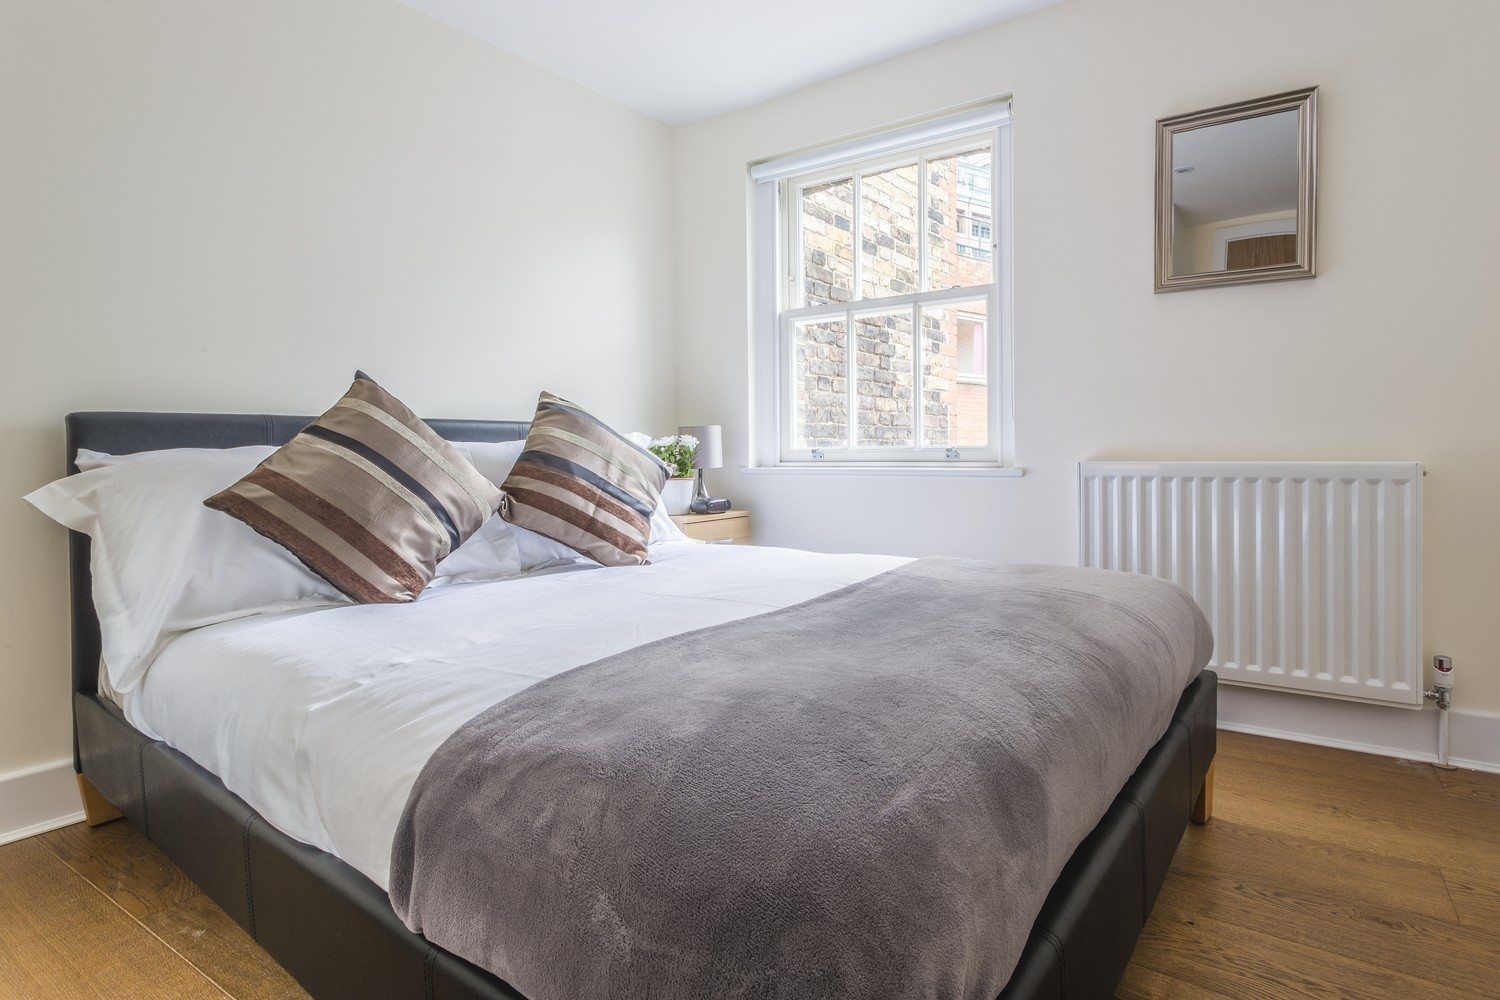 Liverpool Street Short Stay Apartments London UK - Urban Stay serviced apartments